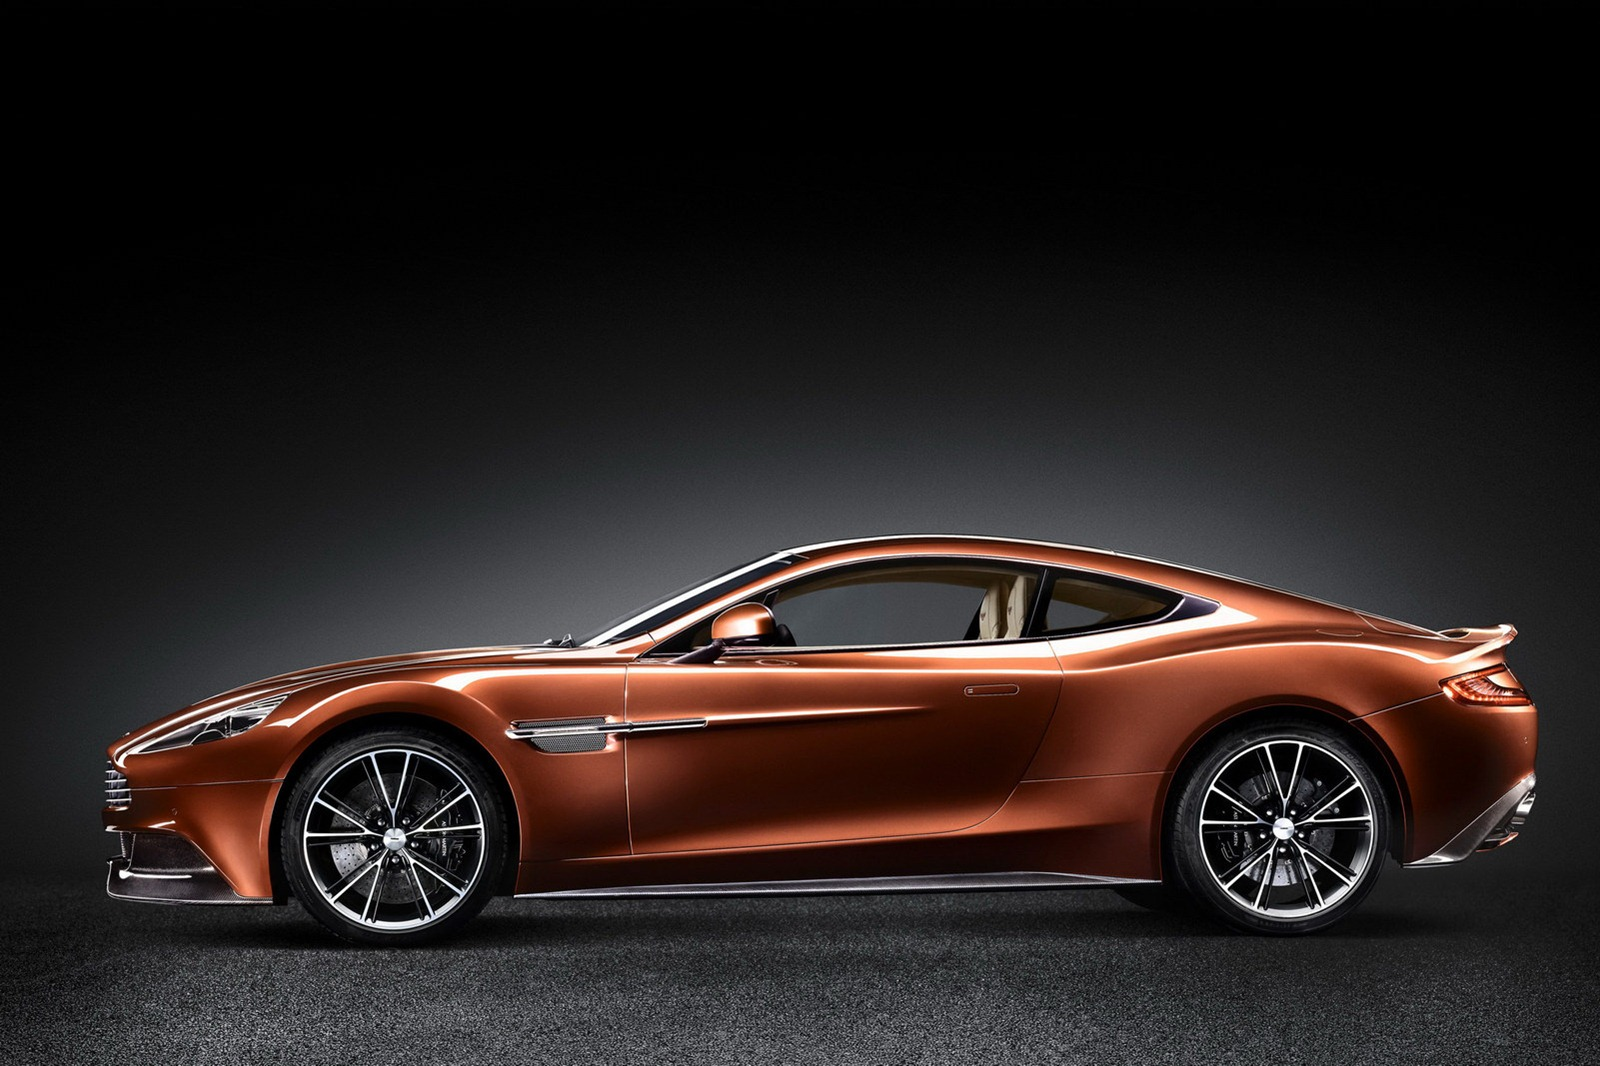 aston martin vanquish specs 2012 2013 2014 2015 2016 2017 2018 autoevolution. Black Bedroom Furniture Sets. Home Design Ideas